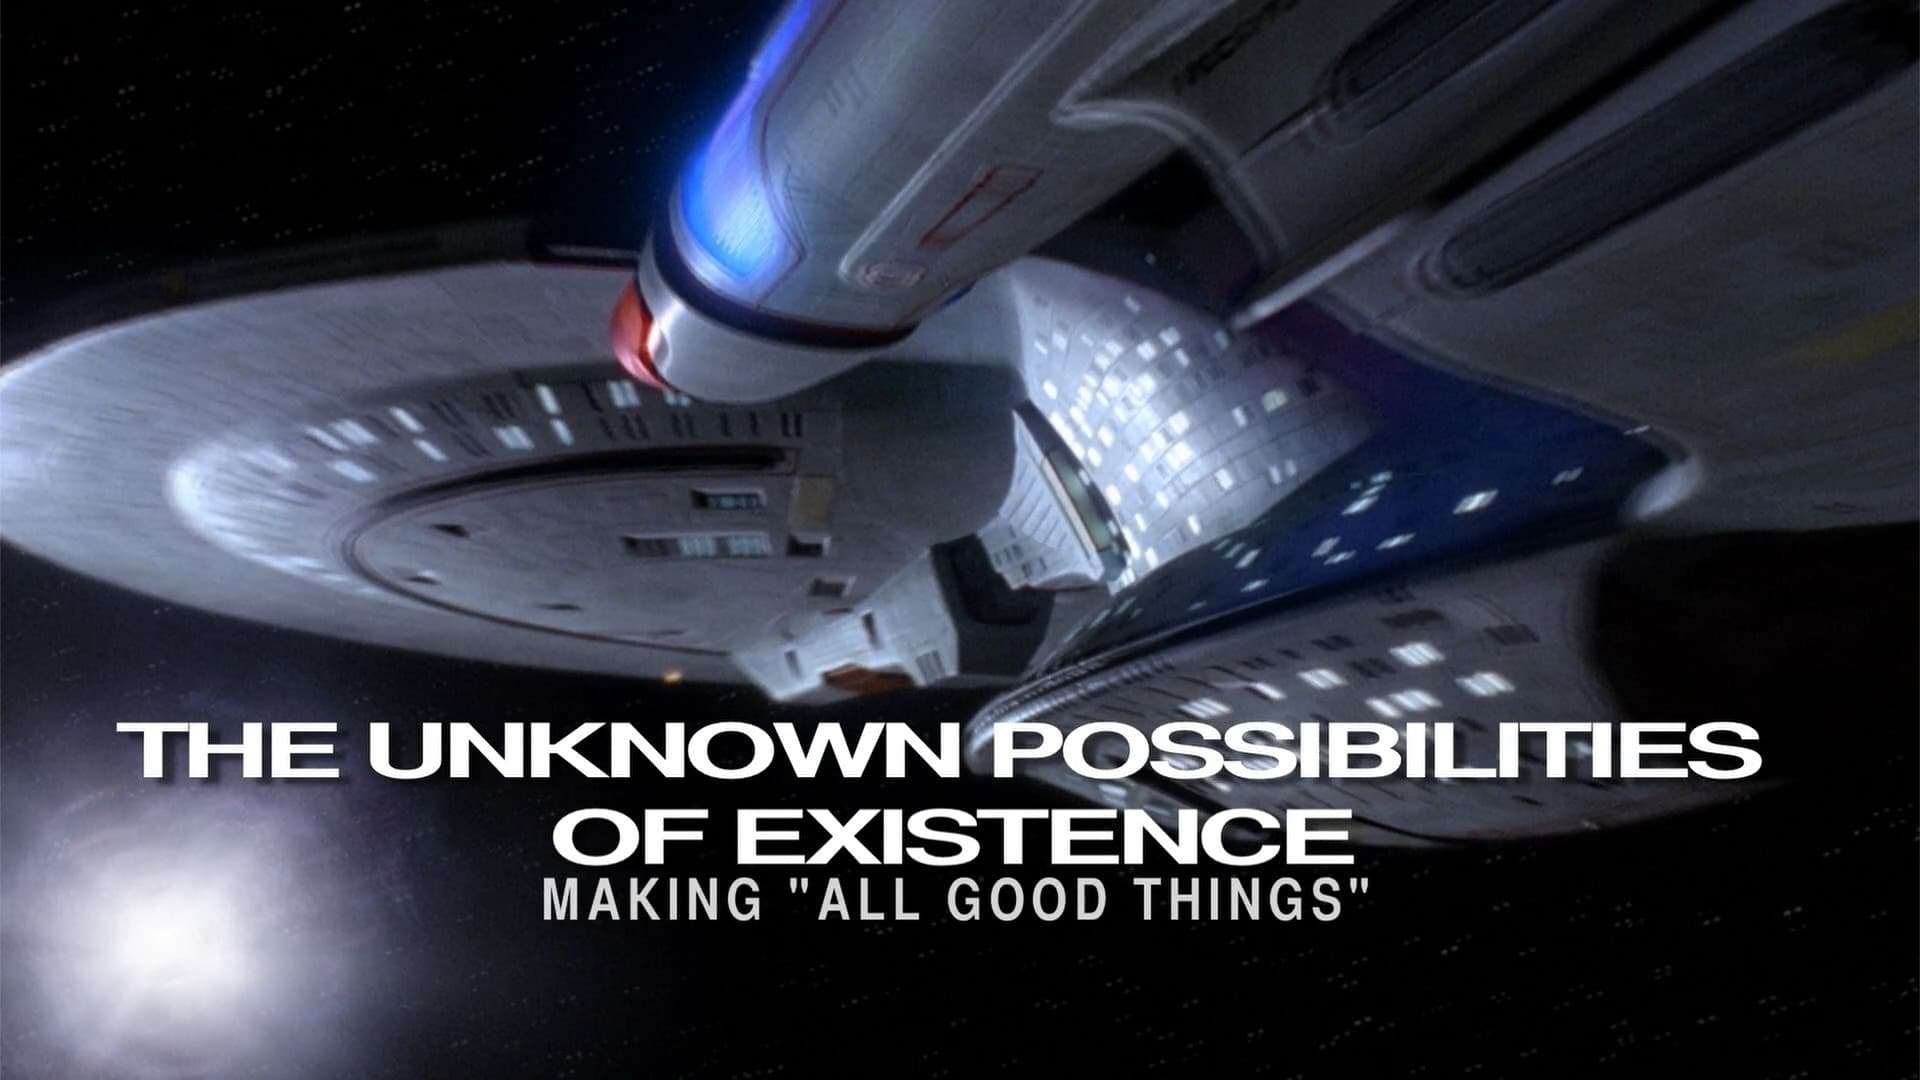 The Unknown Possibilities of Existence: Making